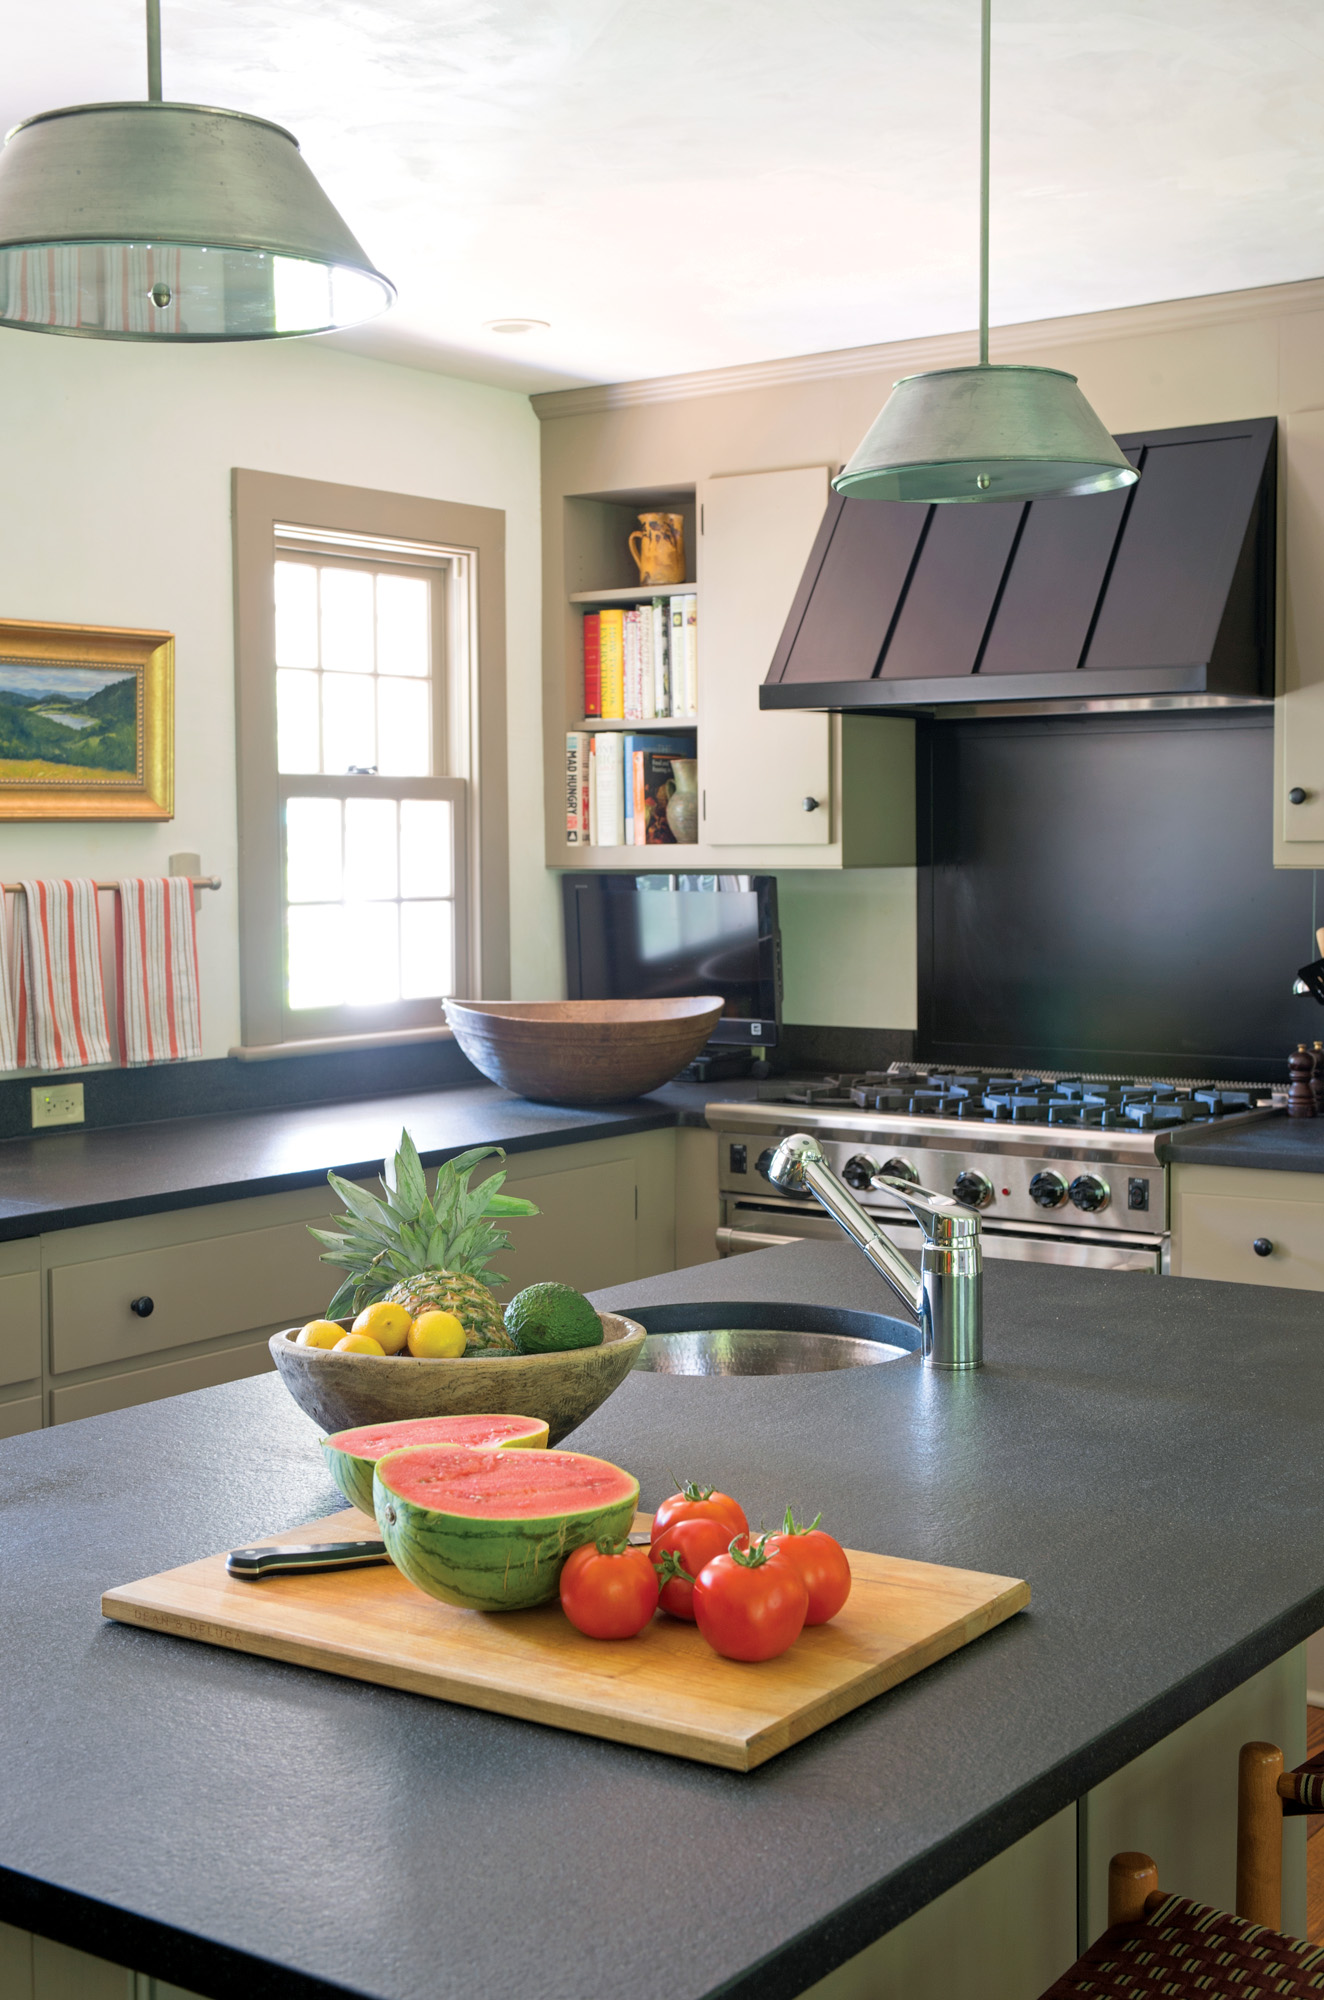 The absence of wall-hung cabinets on the window wall is period- sensitive and opens up the room. The custom range hood (www.betlan.com) is standing-seam metal with a powder-coat finish. Custom hardware is wrought iron.